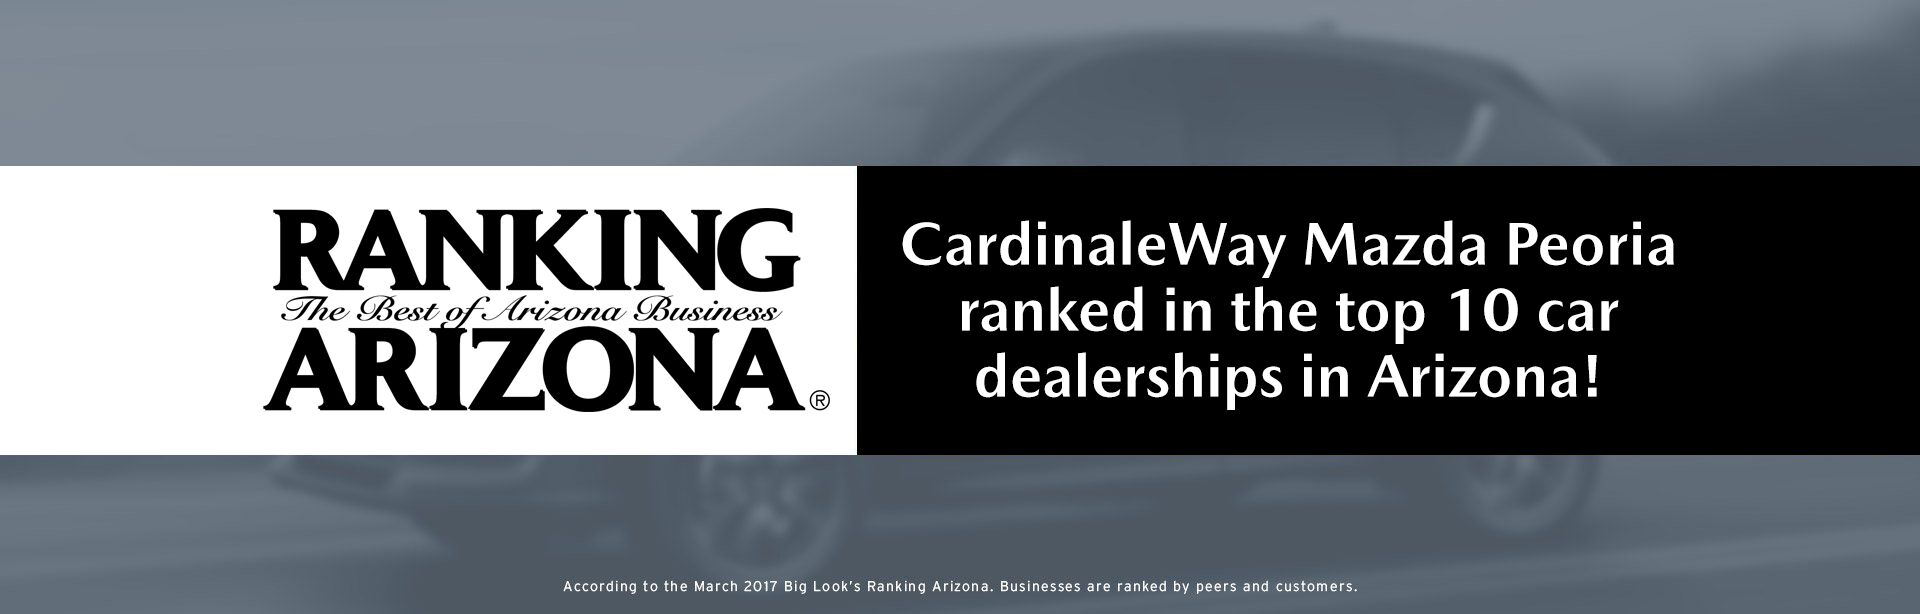 In Top 10 Car Dealerships in Arizona!